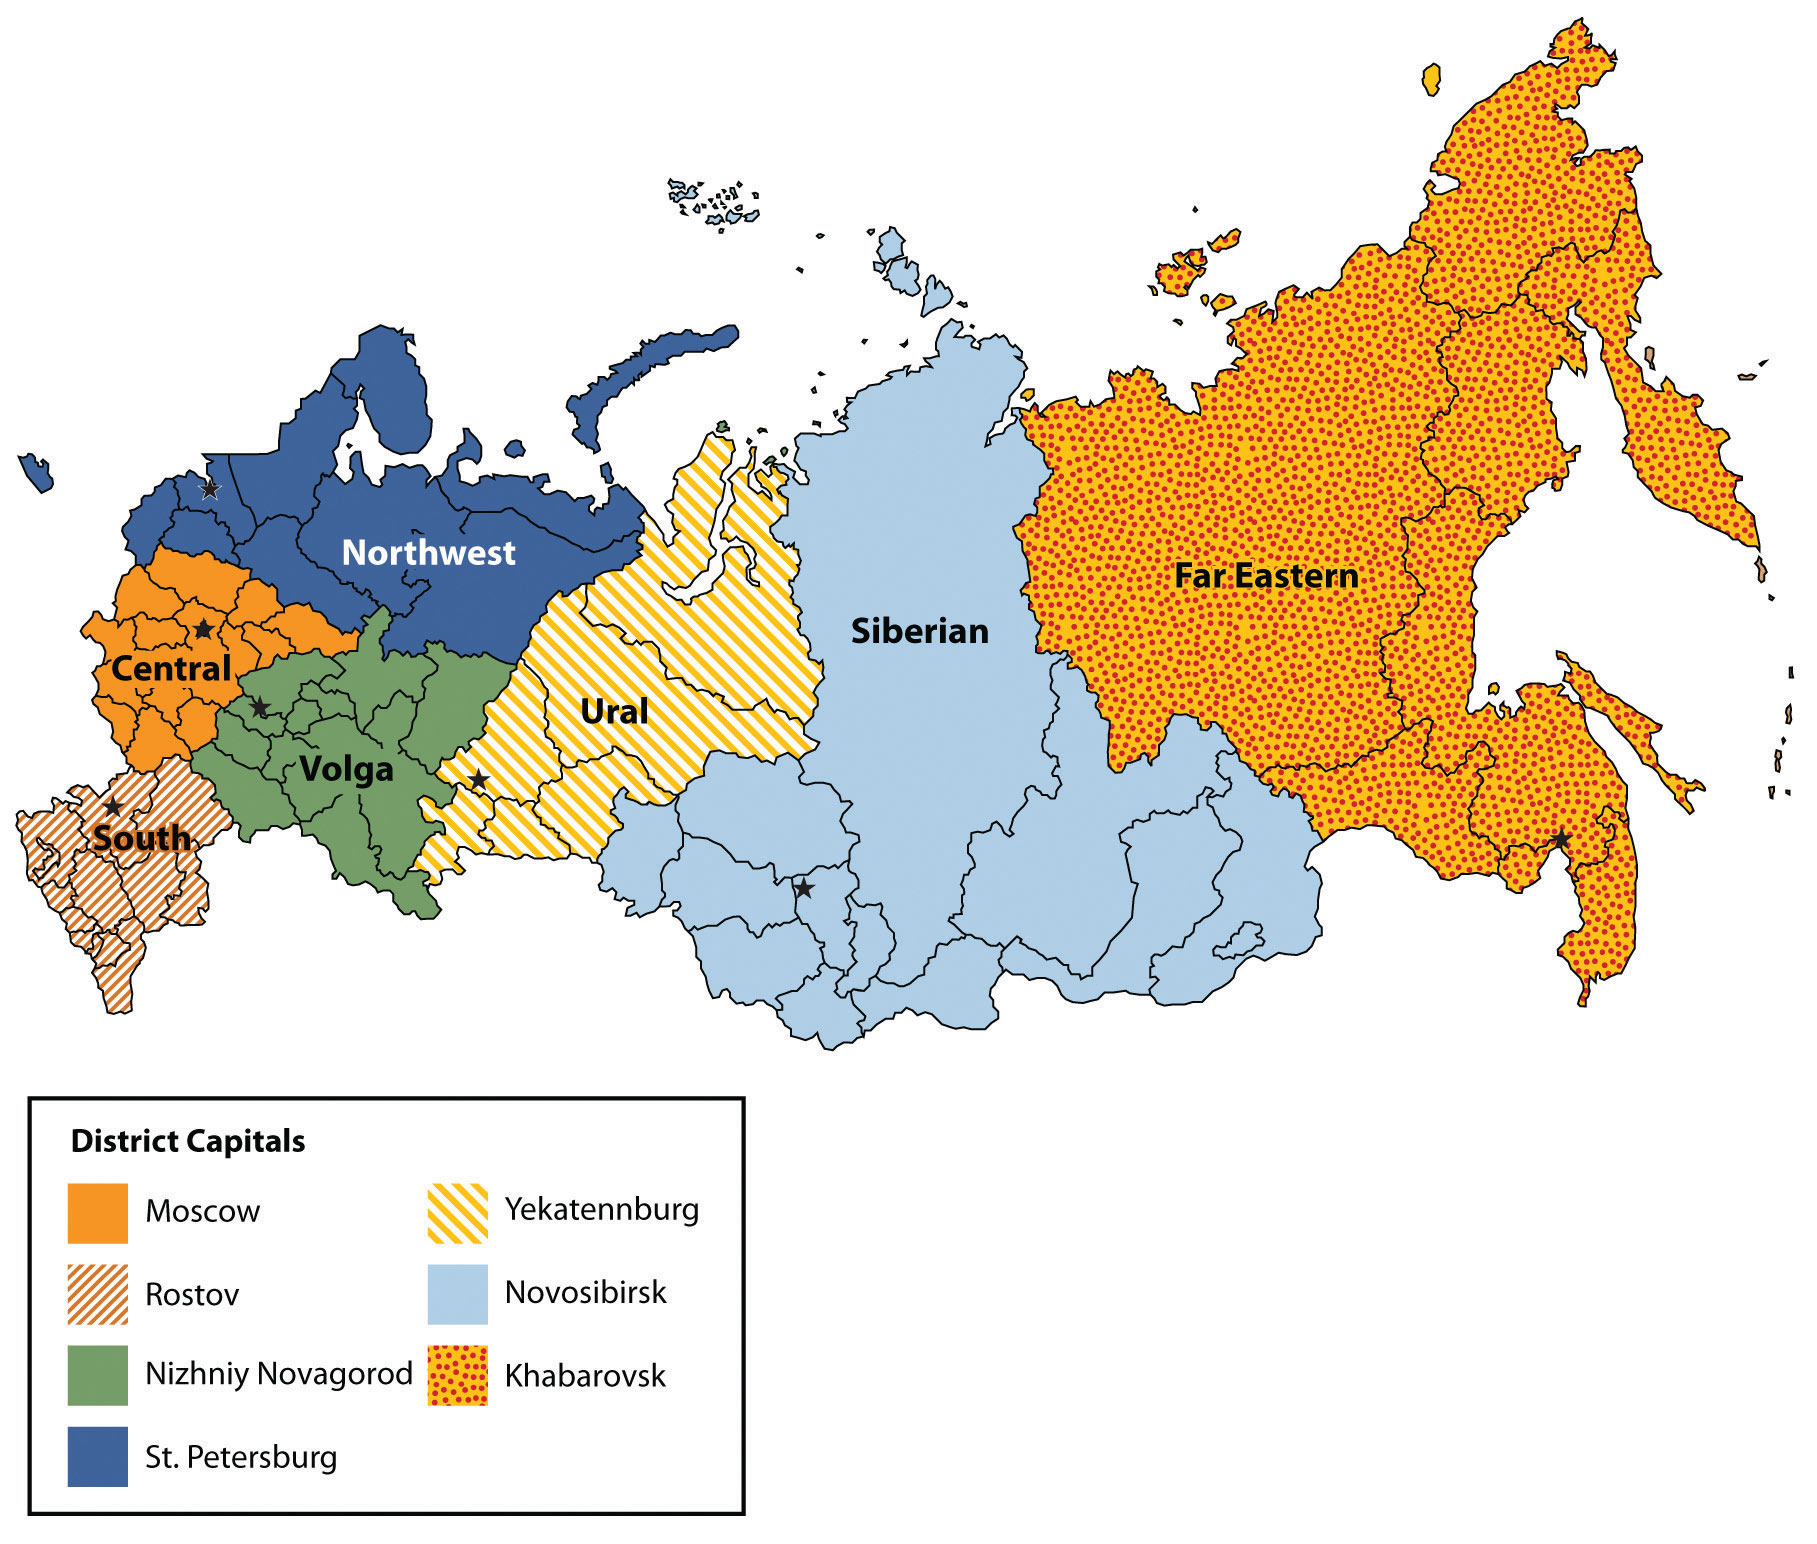 The Autonomous Republic is ... The rights and status of an autonomous republic. How many autonomous republics and districts are there in Russia